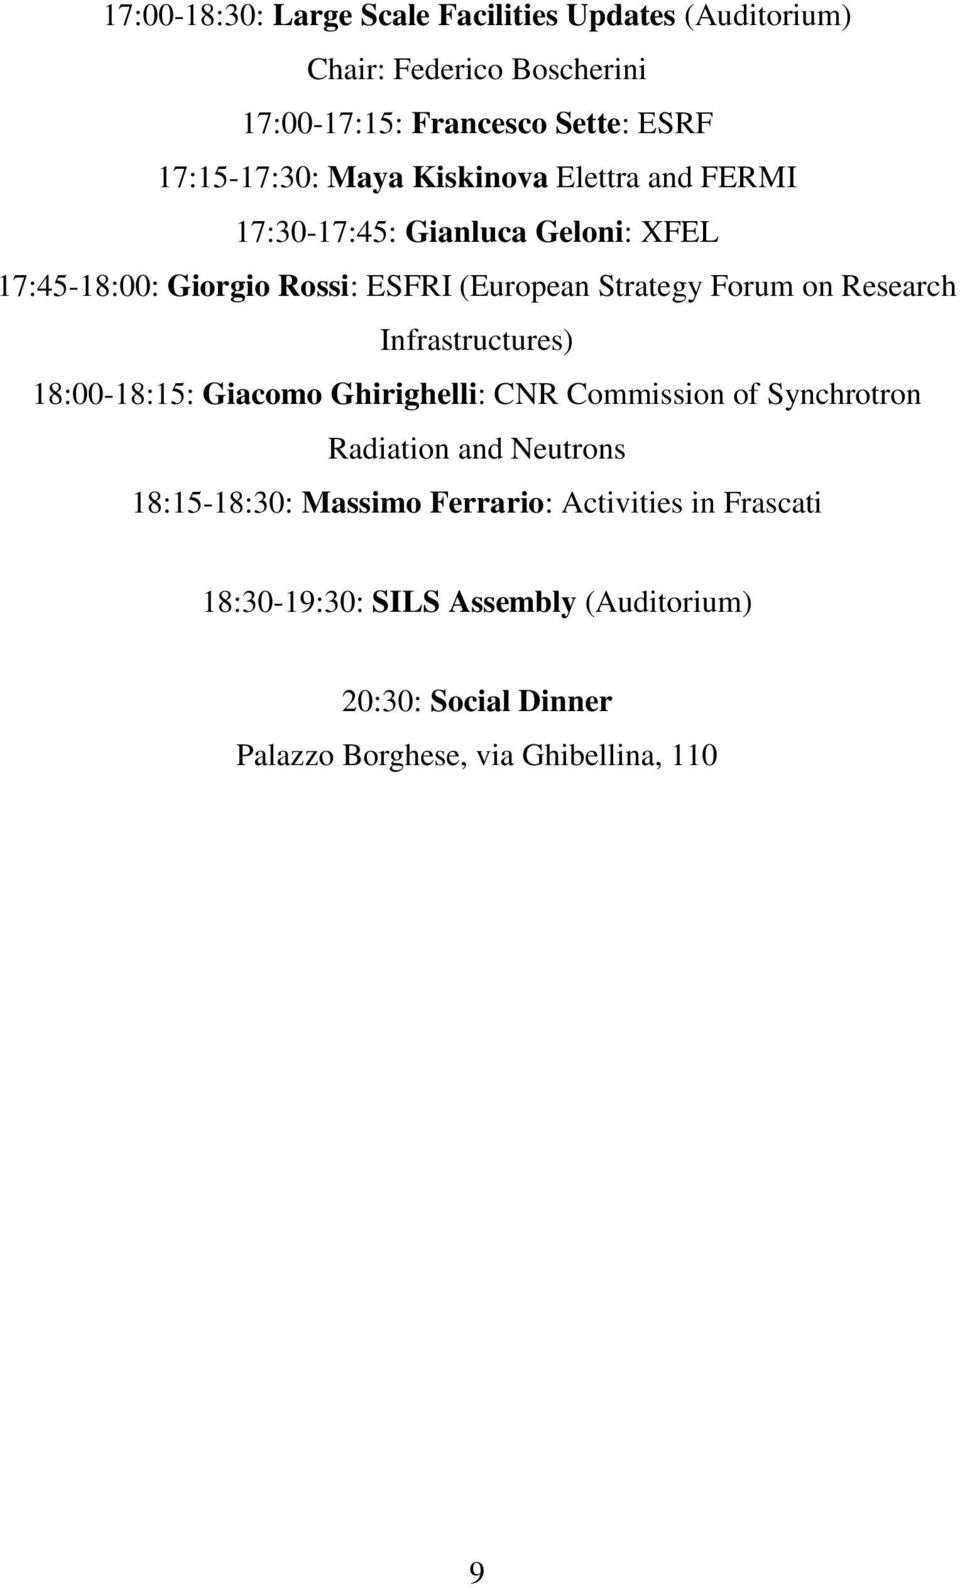 Research Infrastructures) 18:00-18:15: Giacomo Ghirighelli: CNR Commission of Synchrotron Radiation and Neutrons 18:15-18:30: